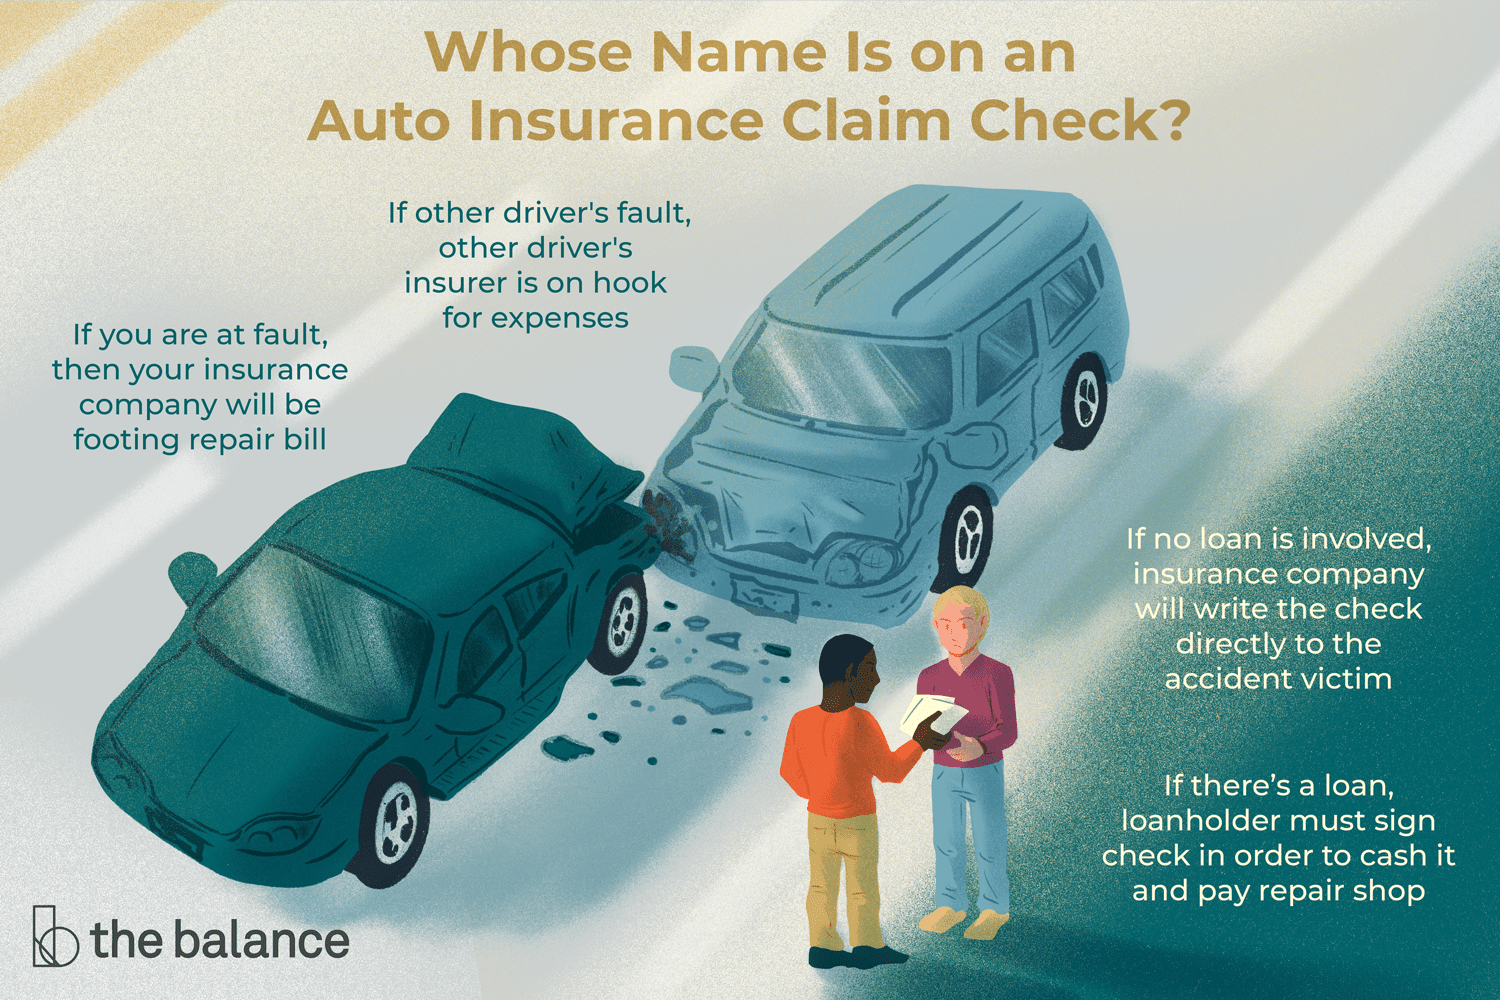 Who An Auto Insurance Claim Check Will Be Made Out To